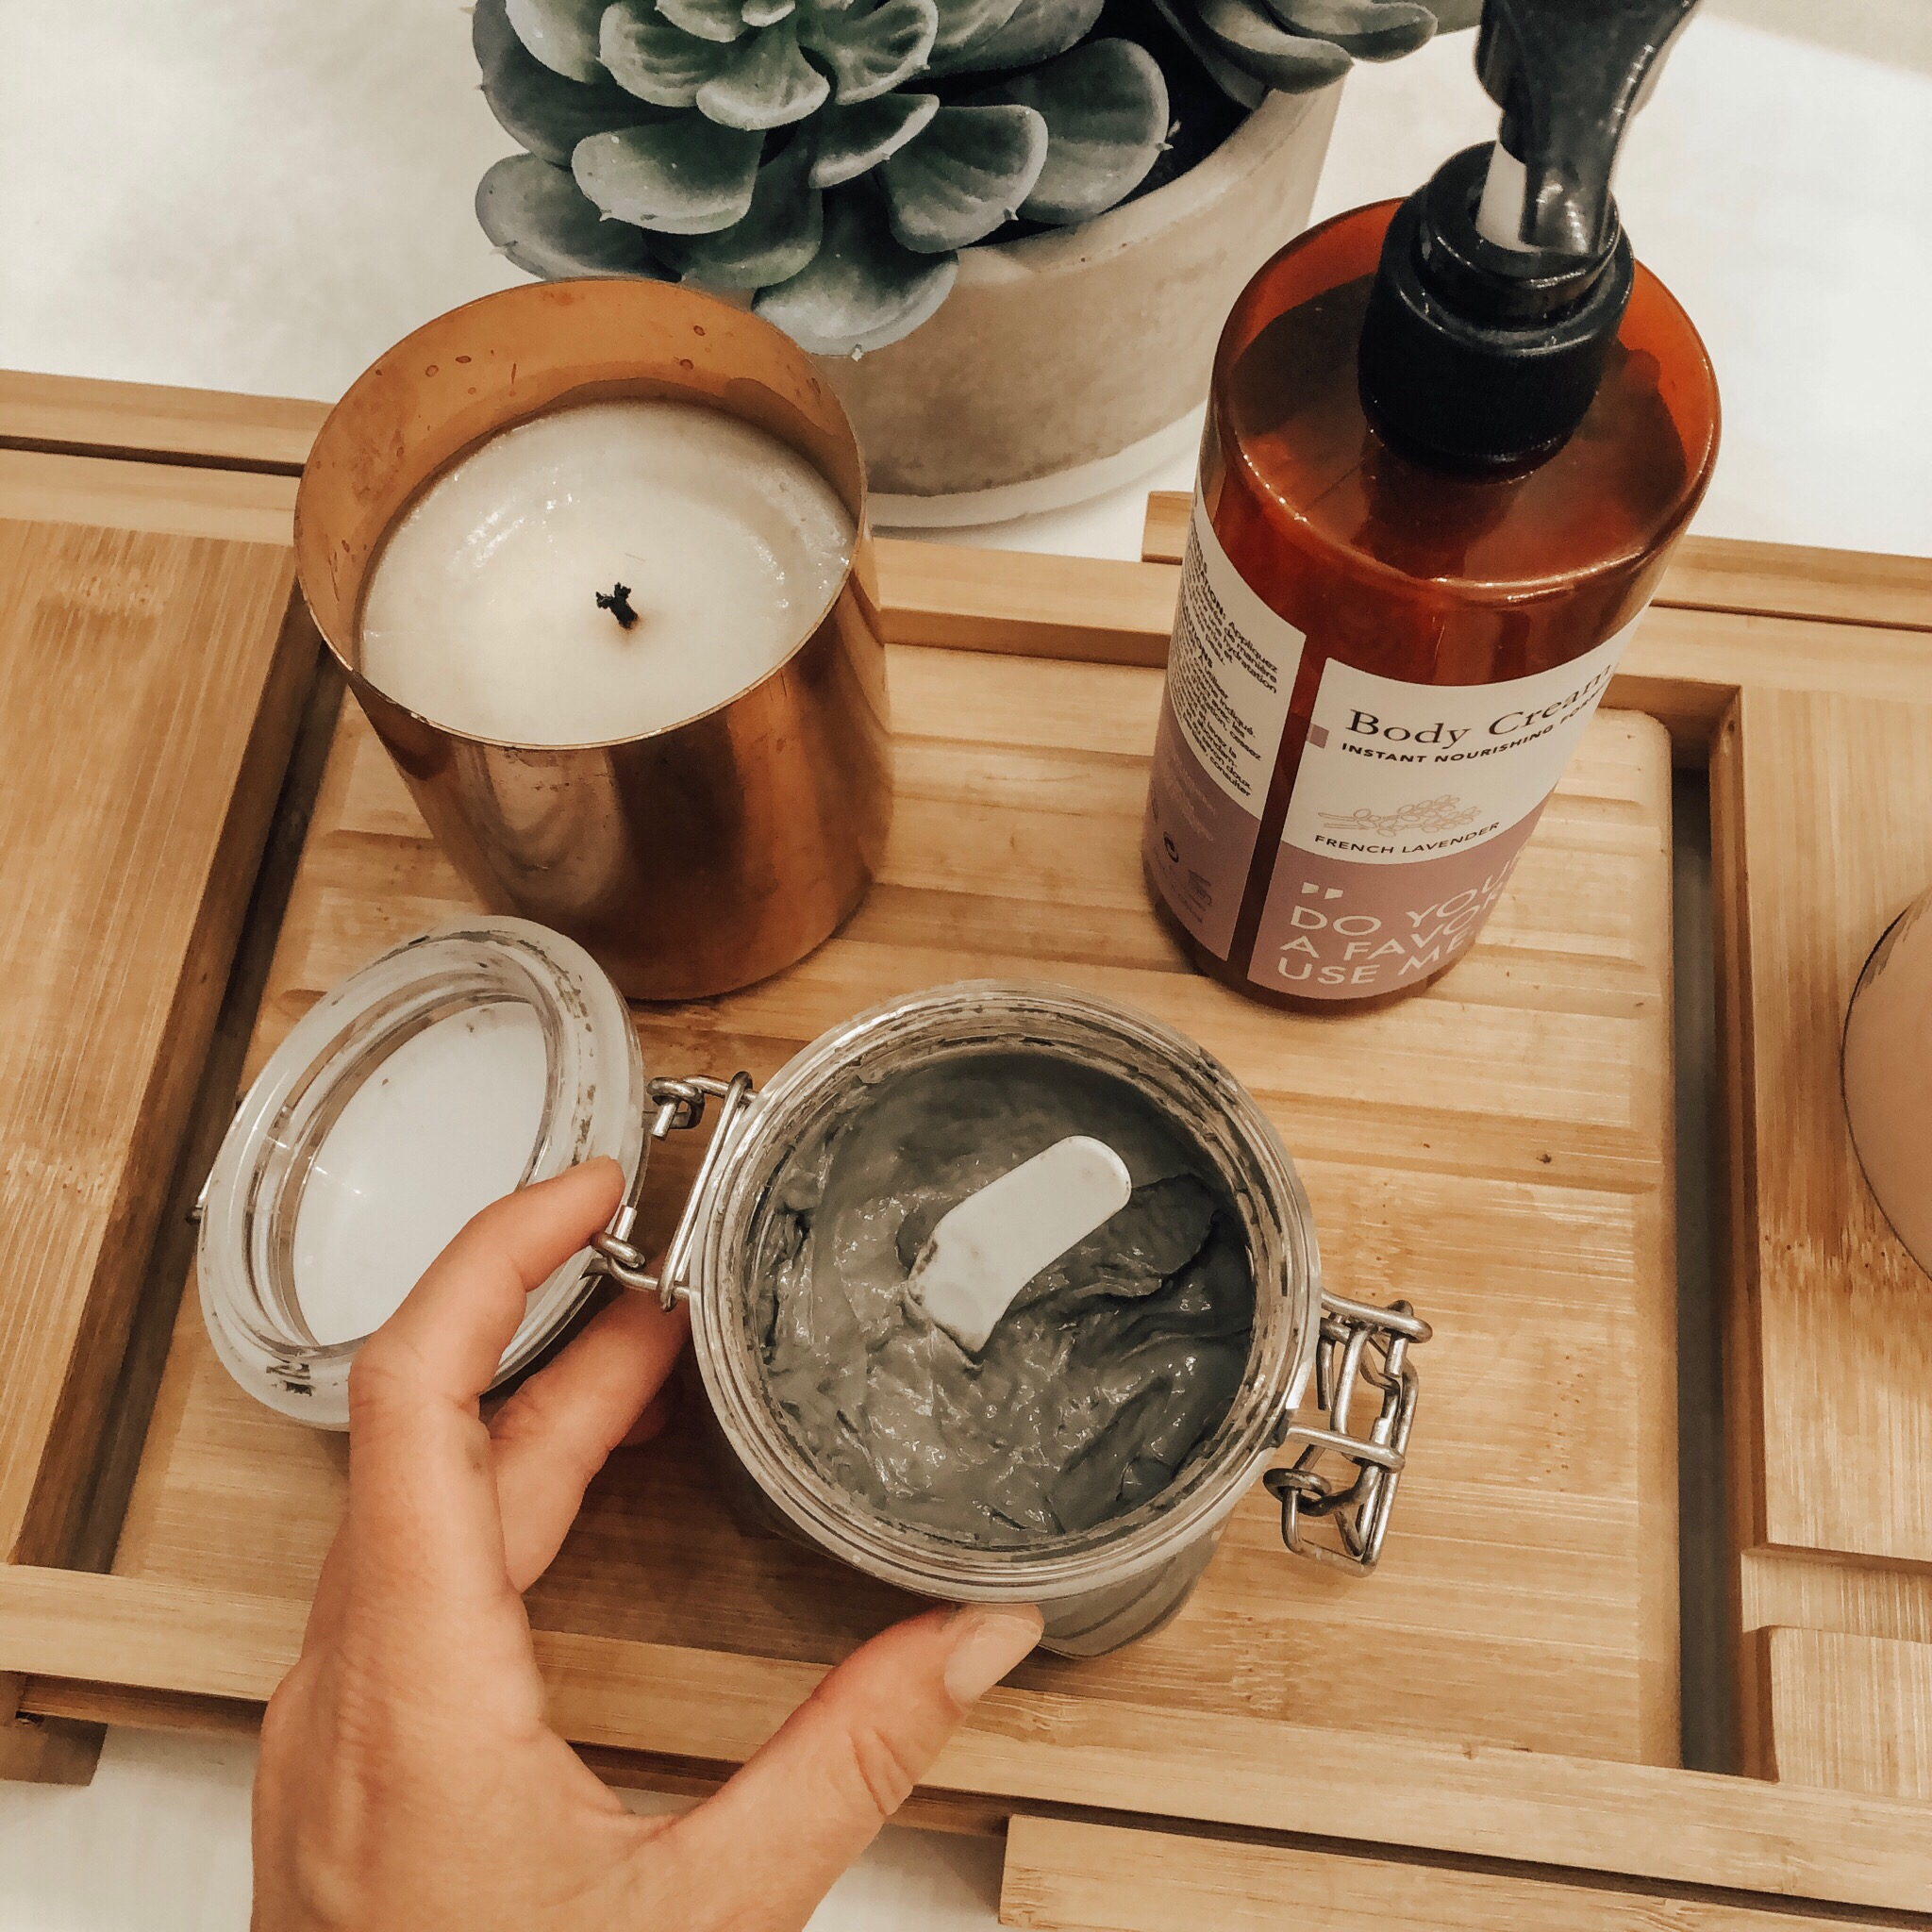 FACE MASKS TO TRANSFORM YOUR SKIN- MY CURRENT FAVORITES + Jaclyn De Leon Style + Do you have dull or acne prone skin that needs a boost? I'm dishing on my current must-have face masks that will completely revitalize your skin. Add them to your skincare routine 1-2 times per week and it will change your life.